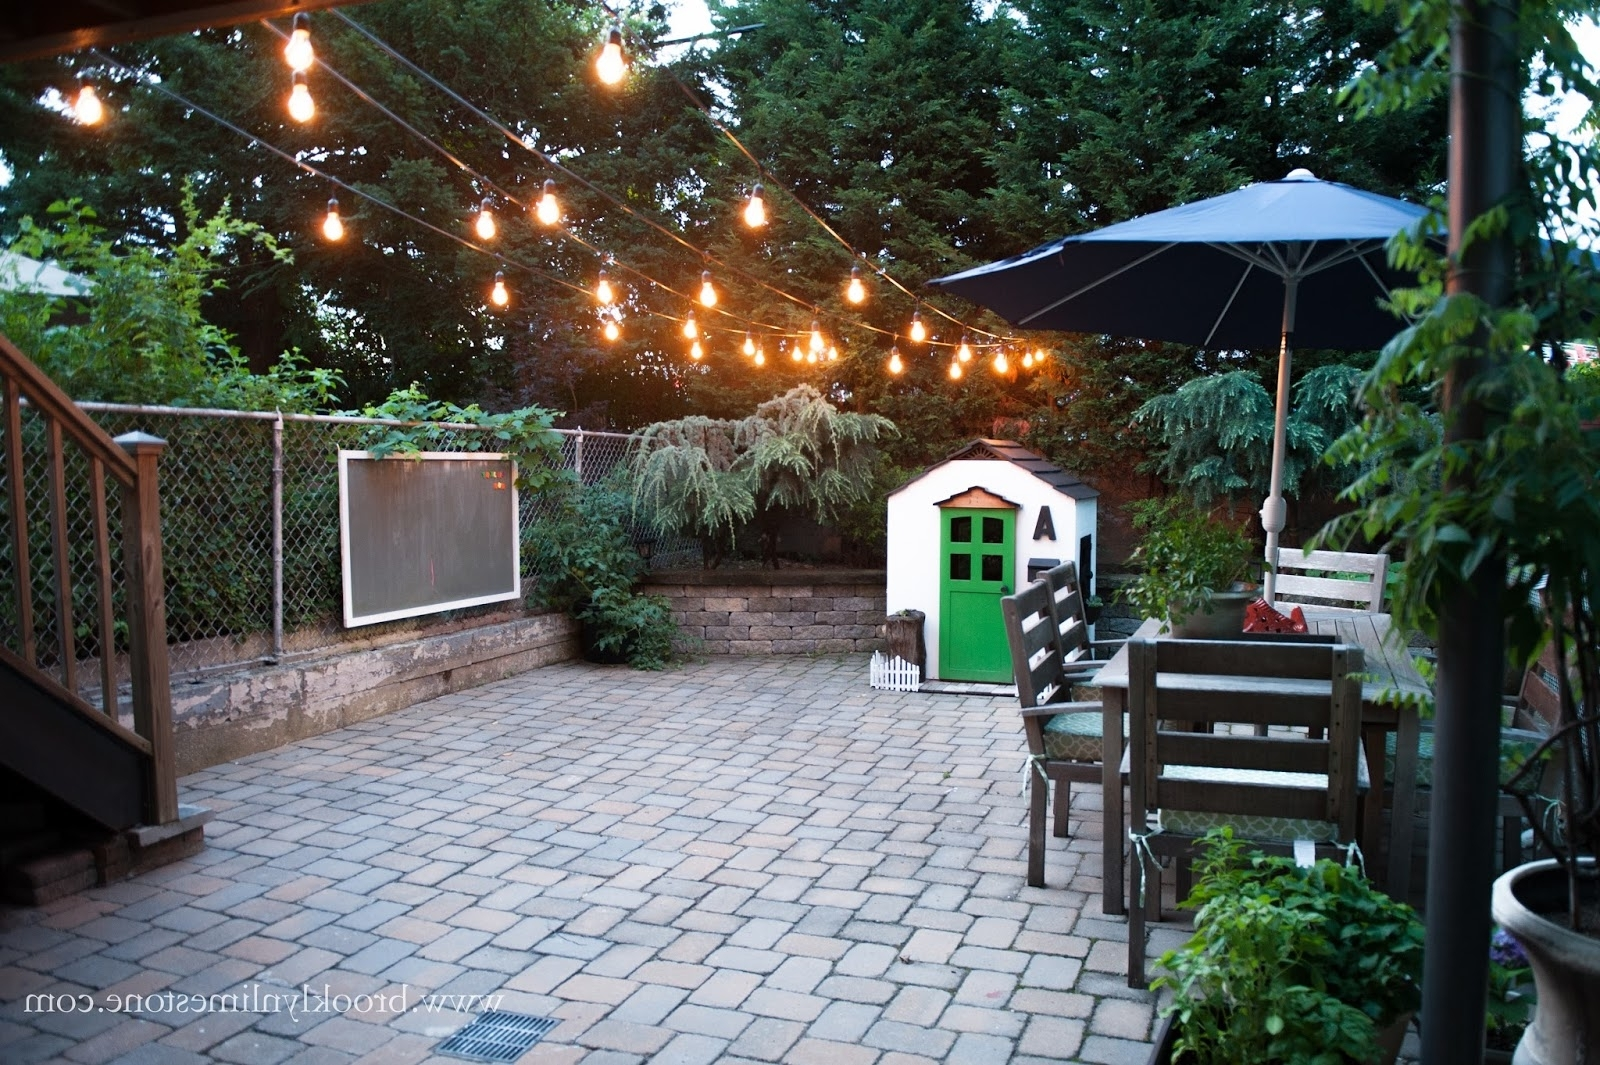 [%Incridible Hanging String Lights Outdoors For Backyardlights%b%%bof With Regard To 2018 Outdoor Patio Hanging String Lights Outdoor Patio Hanging String Lights With Most Recent Incridible Hanging String Lights Outdoors For Backyardlights%b%%bof Well Known Outdoor Patio Hanging String Lights Intended For Incridible Hanging String Lights Outdoors For Backyardlights%b%%bof Preferred Incridible Hanging String Lights Outdoors For Backyardlights%b%%bof With Regard To Outdoor Patio Hanging String Lights%] (View 1 of 20)